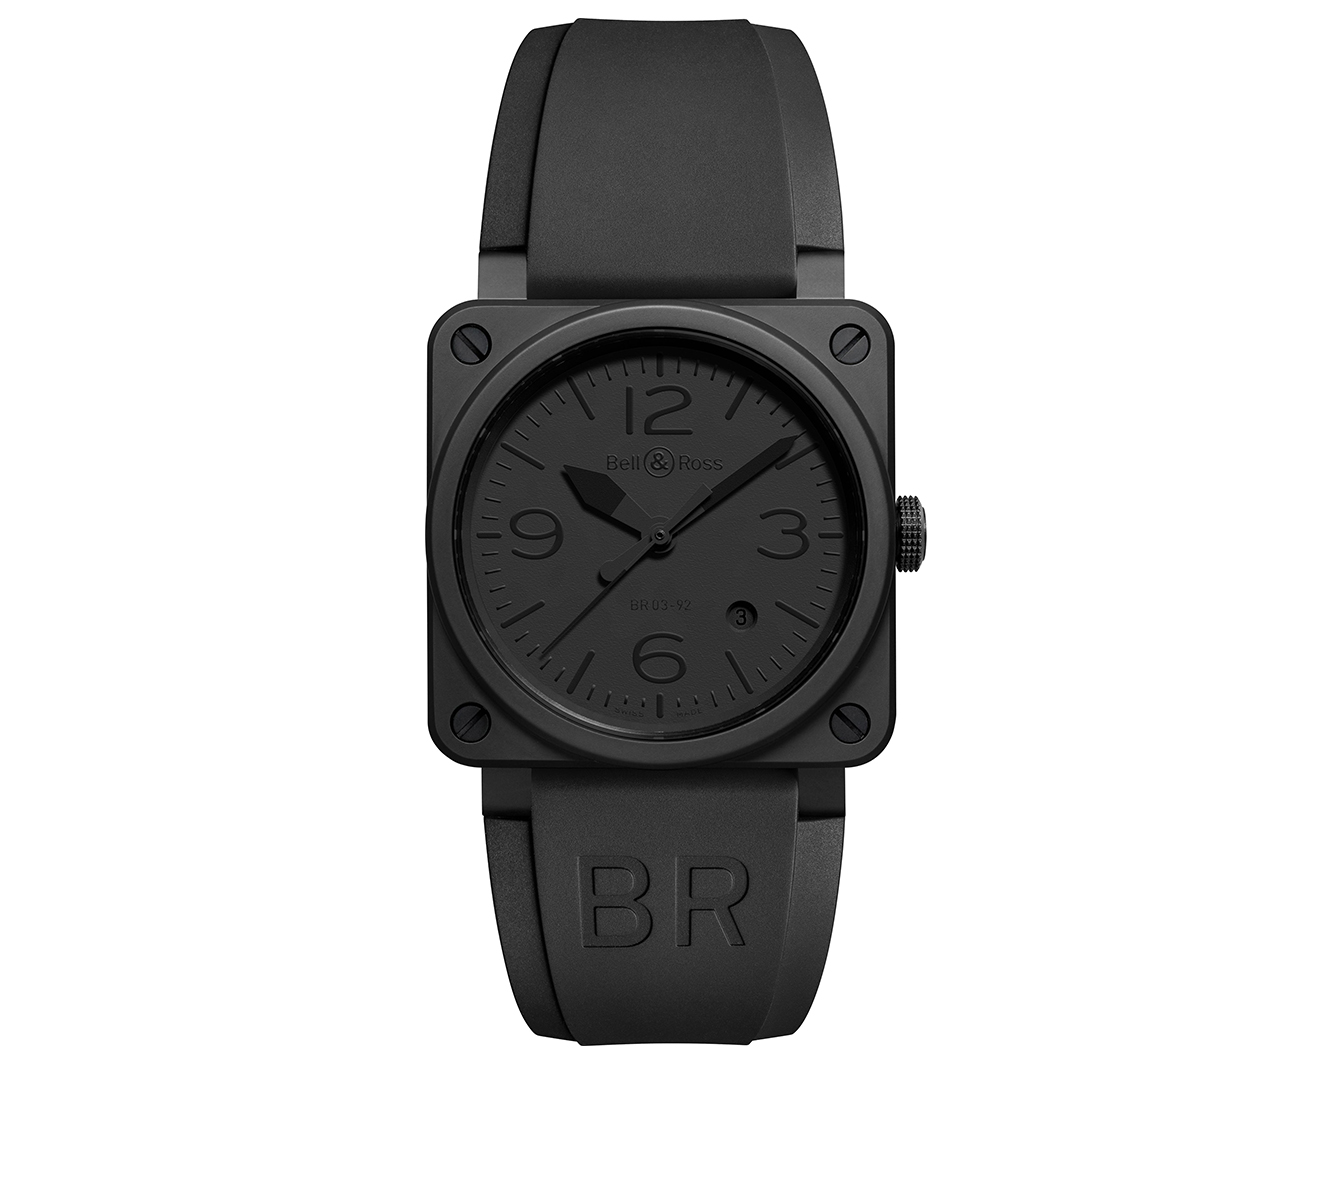 Часы Phantom Ceramic Bell&Ross BR 03 BR0392-PHANTOM-CE - фото 1 – Mercury